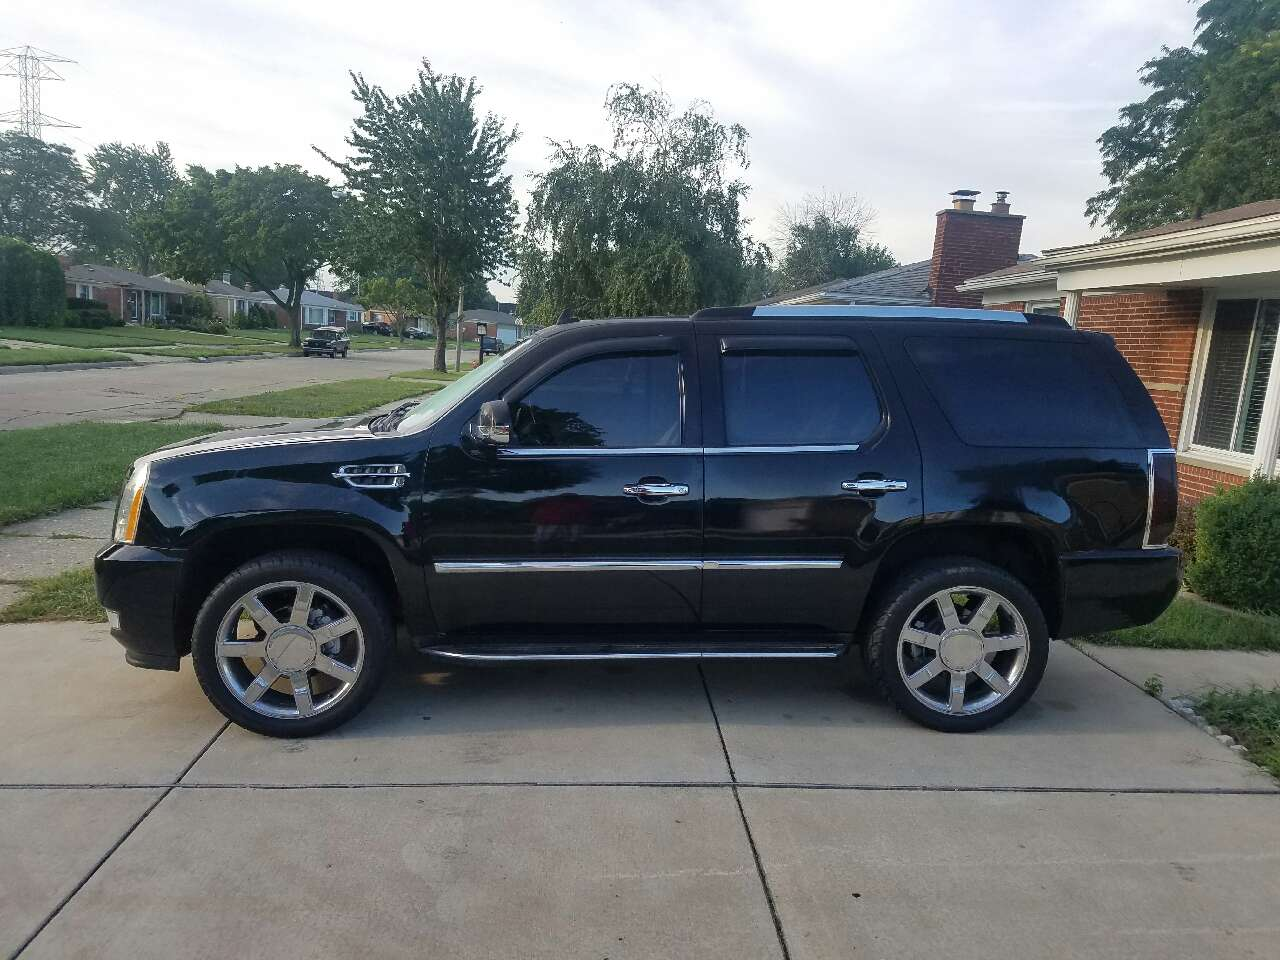 letgo 2007 cadillac escalade in warren mi. Black Bedroom Furniture Sets. Home Design Ideas